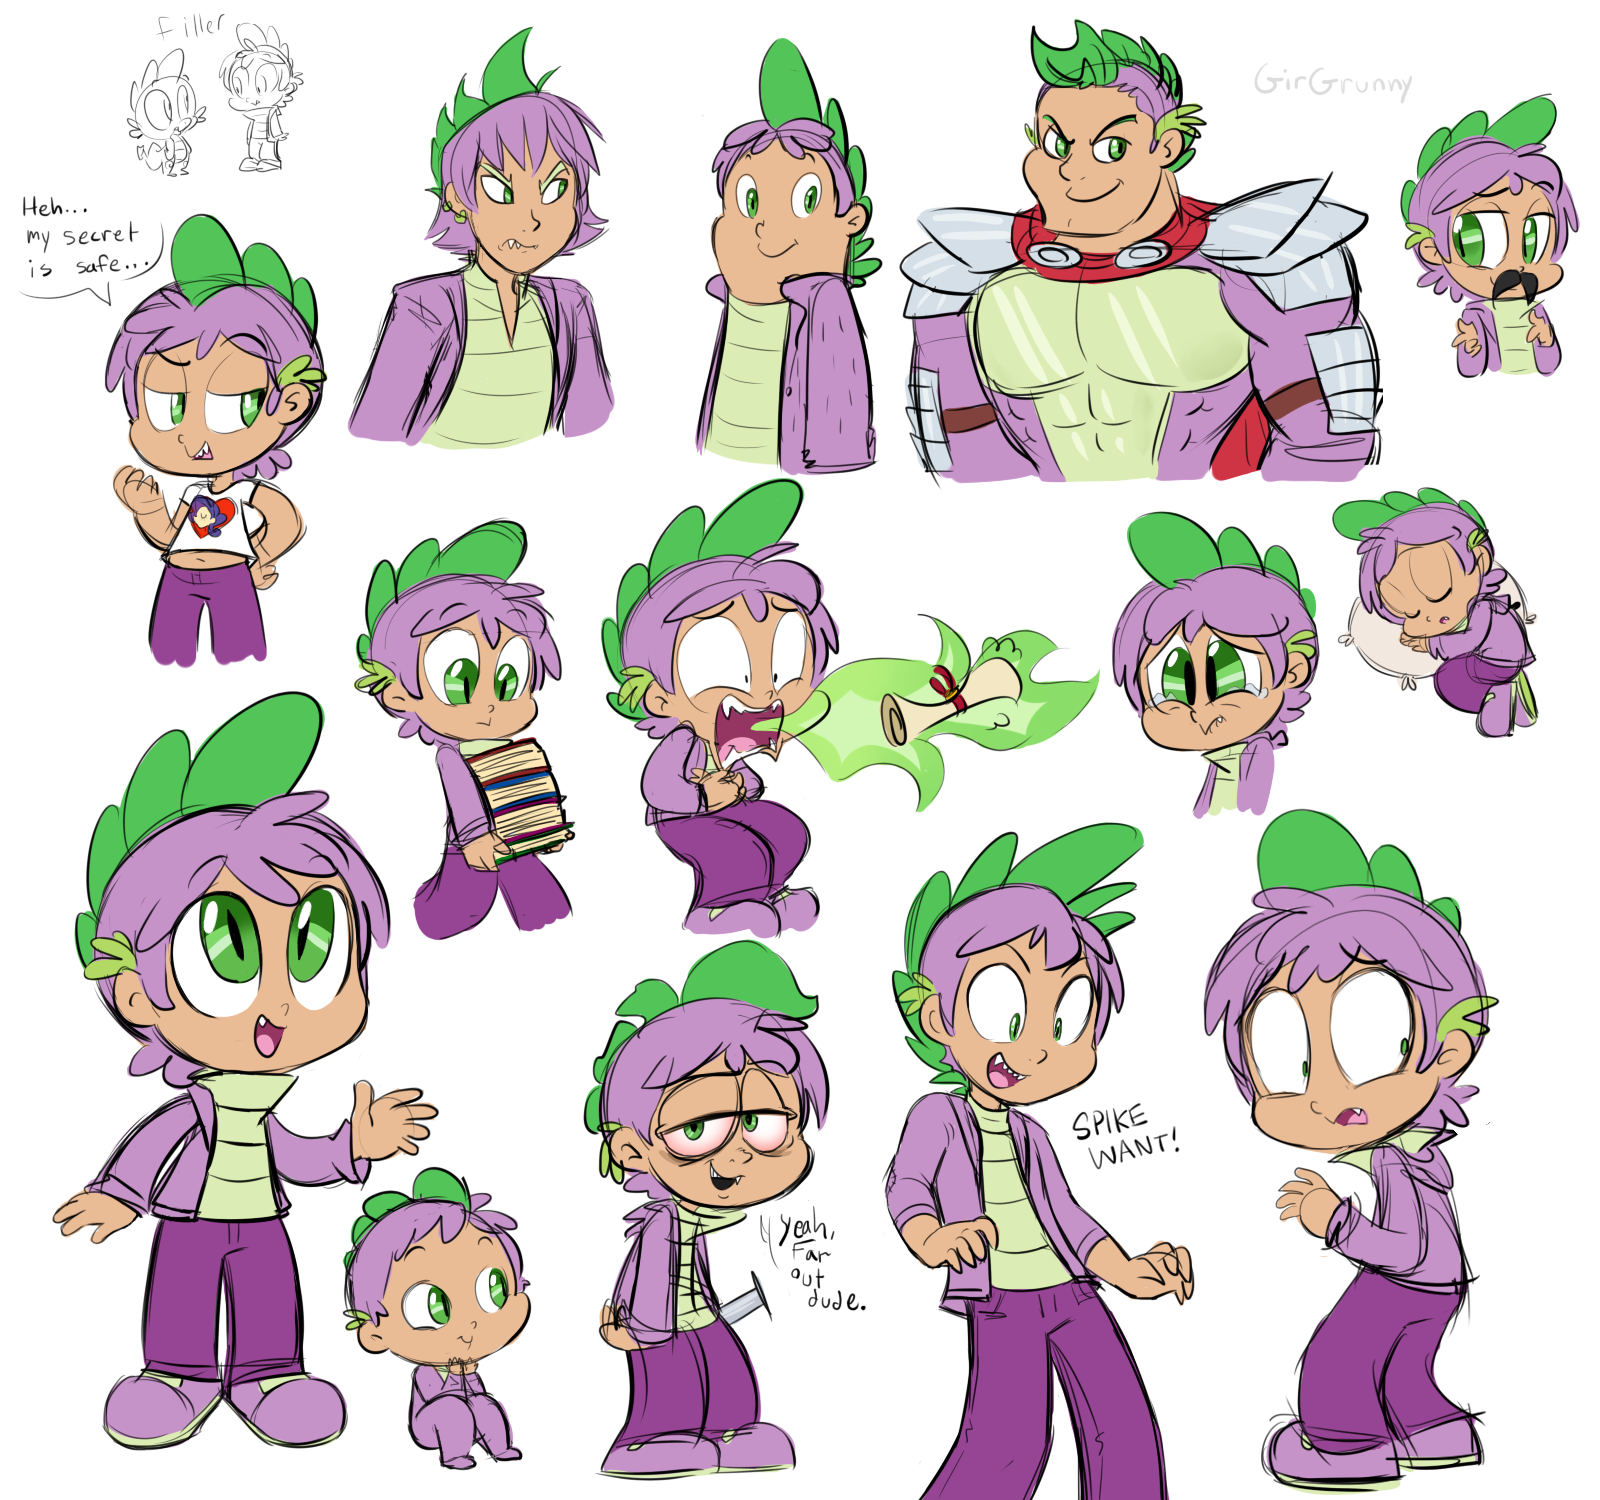 Spike is Best Person by GirGrunny